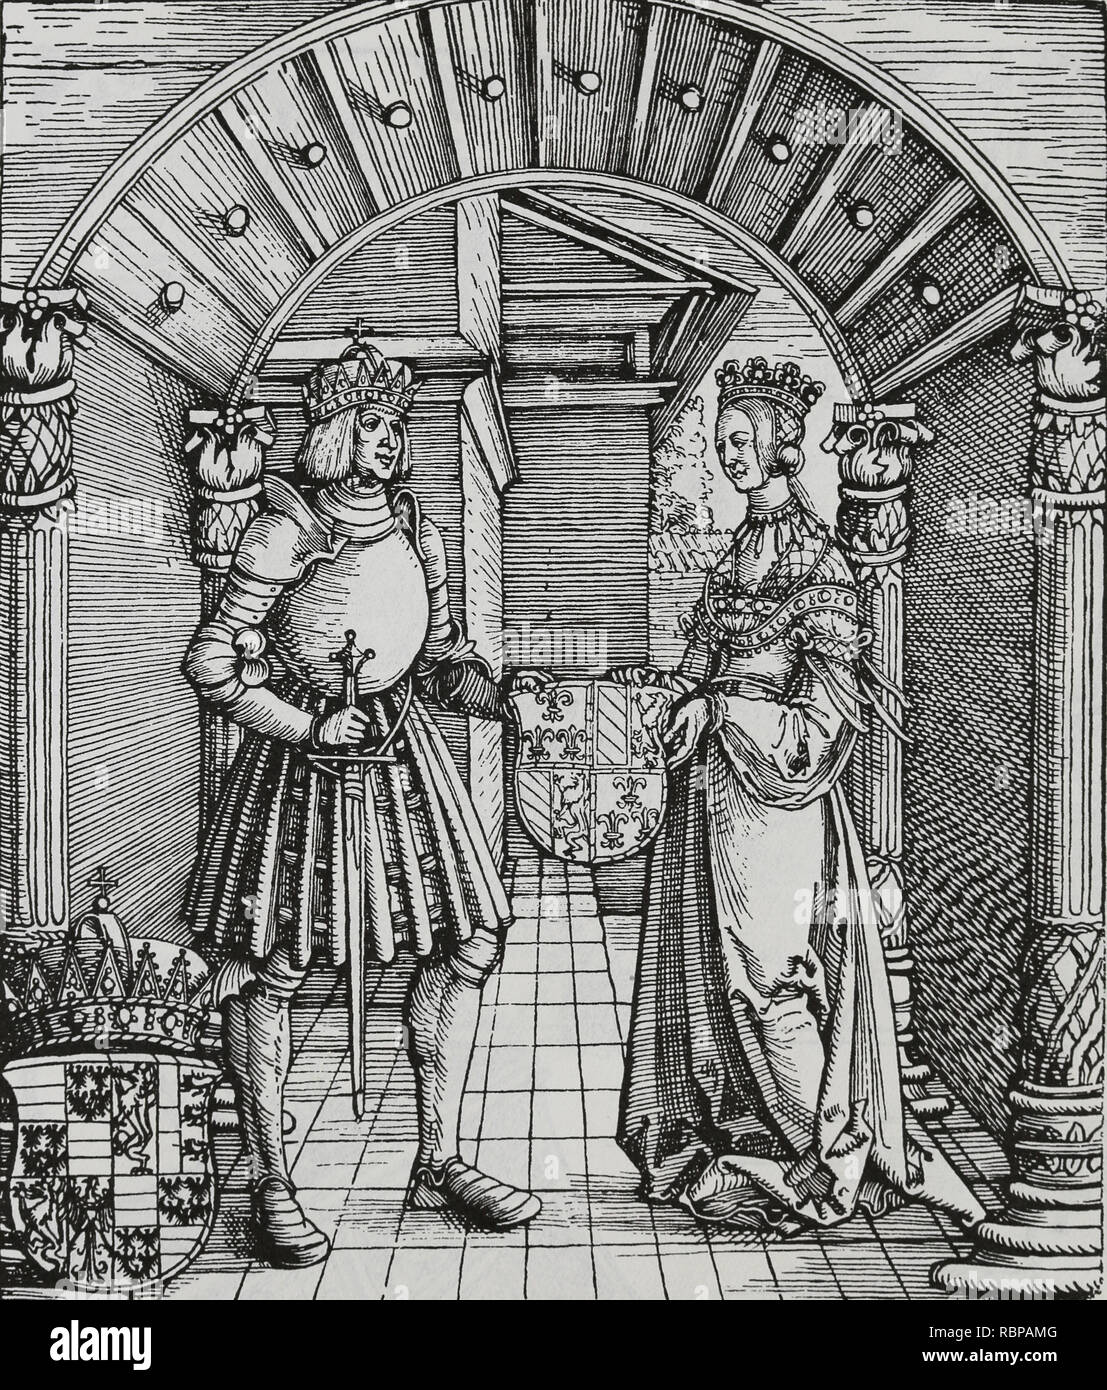 Maximilian I (1459-1519). Holy Roman Emperor. Engraving by Durer. The betrothal of Maximilian I with Mary of Burgundy. - Stock Image